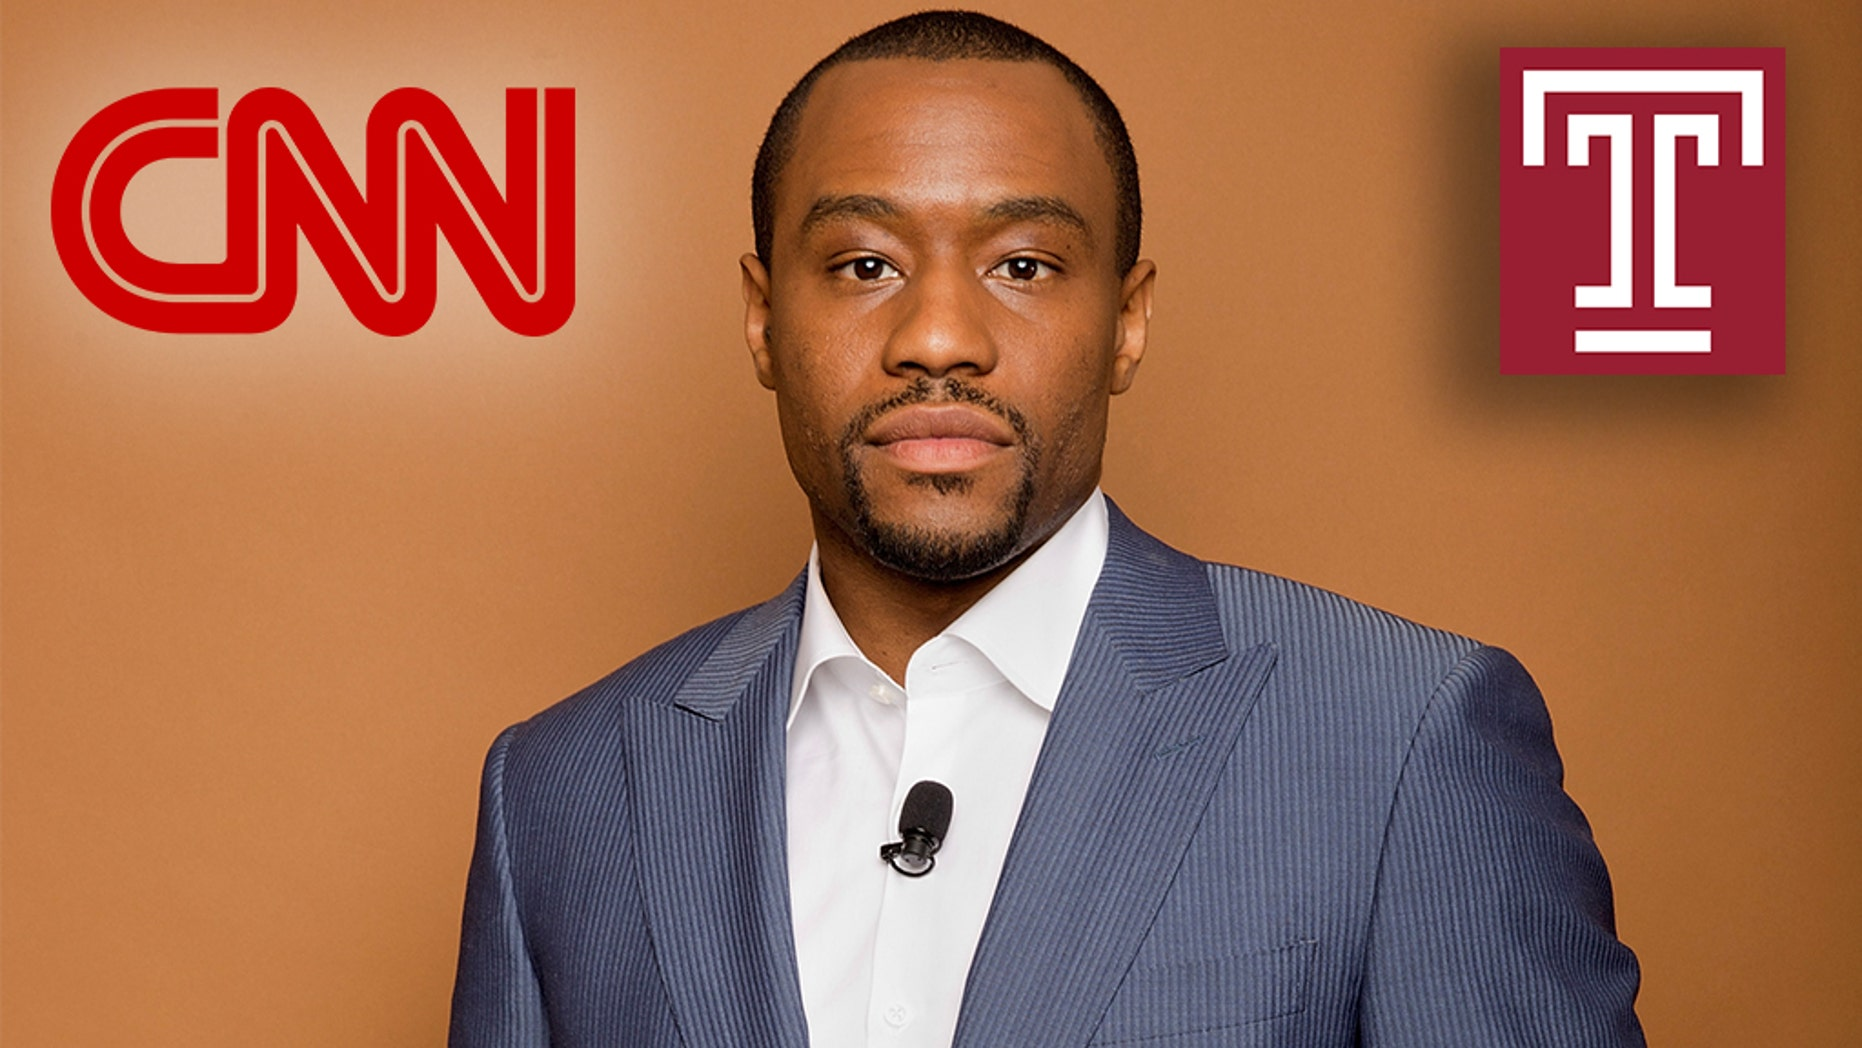 Temple University stood by Marc Lamont Hill after CNN fired him following controversial remarks at the United Nations. (Photo by J. Countess/Getty Images)